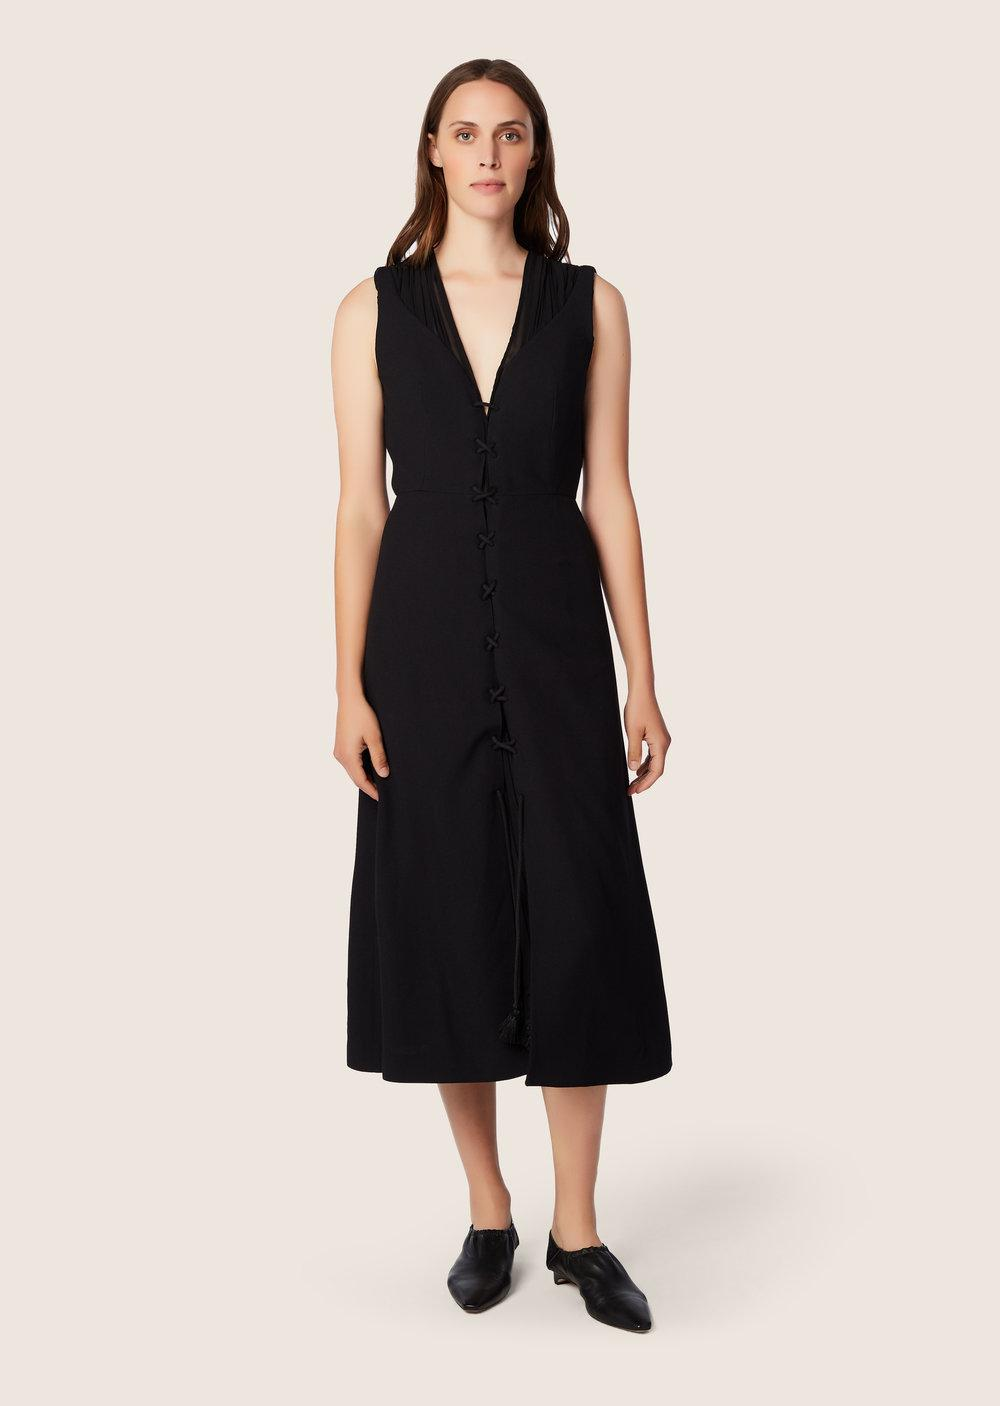 Sale New Styles Sleeveless Layered Dress with Lacing Detail - Black Derek Lam Cheap Outlet Marketable For Sale Manchester Online New Arrival Sale Online 442MXH